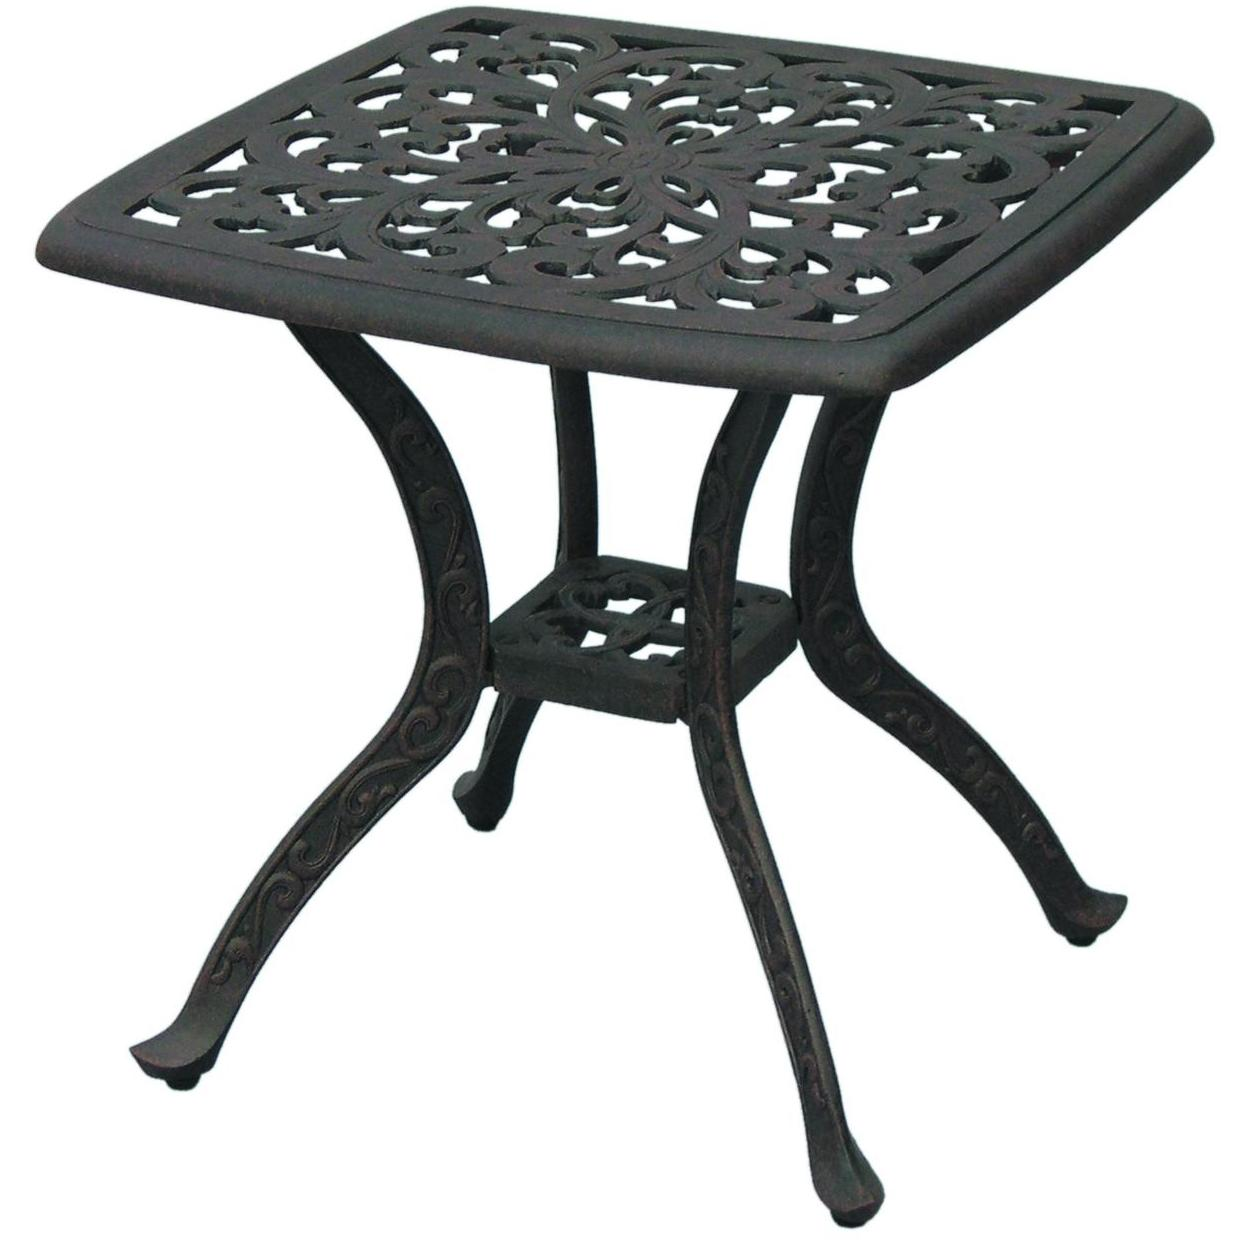 darlee series aluminum patio end table the outdoor metal accent tables yellow decorative accessories ott chair console agate pewter side brass and glass rustic industrial target